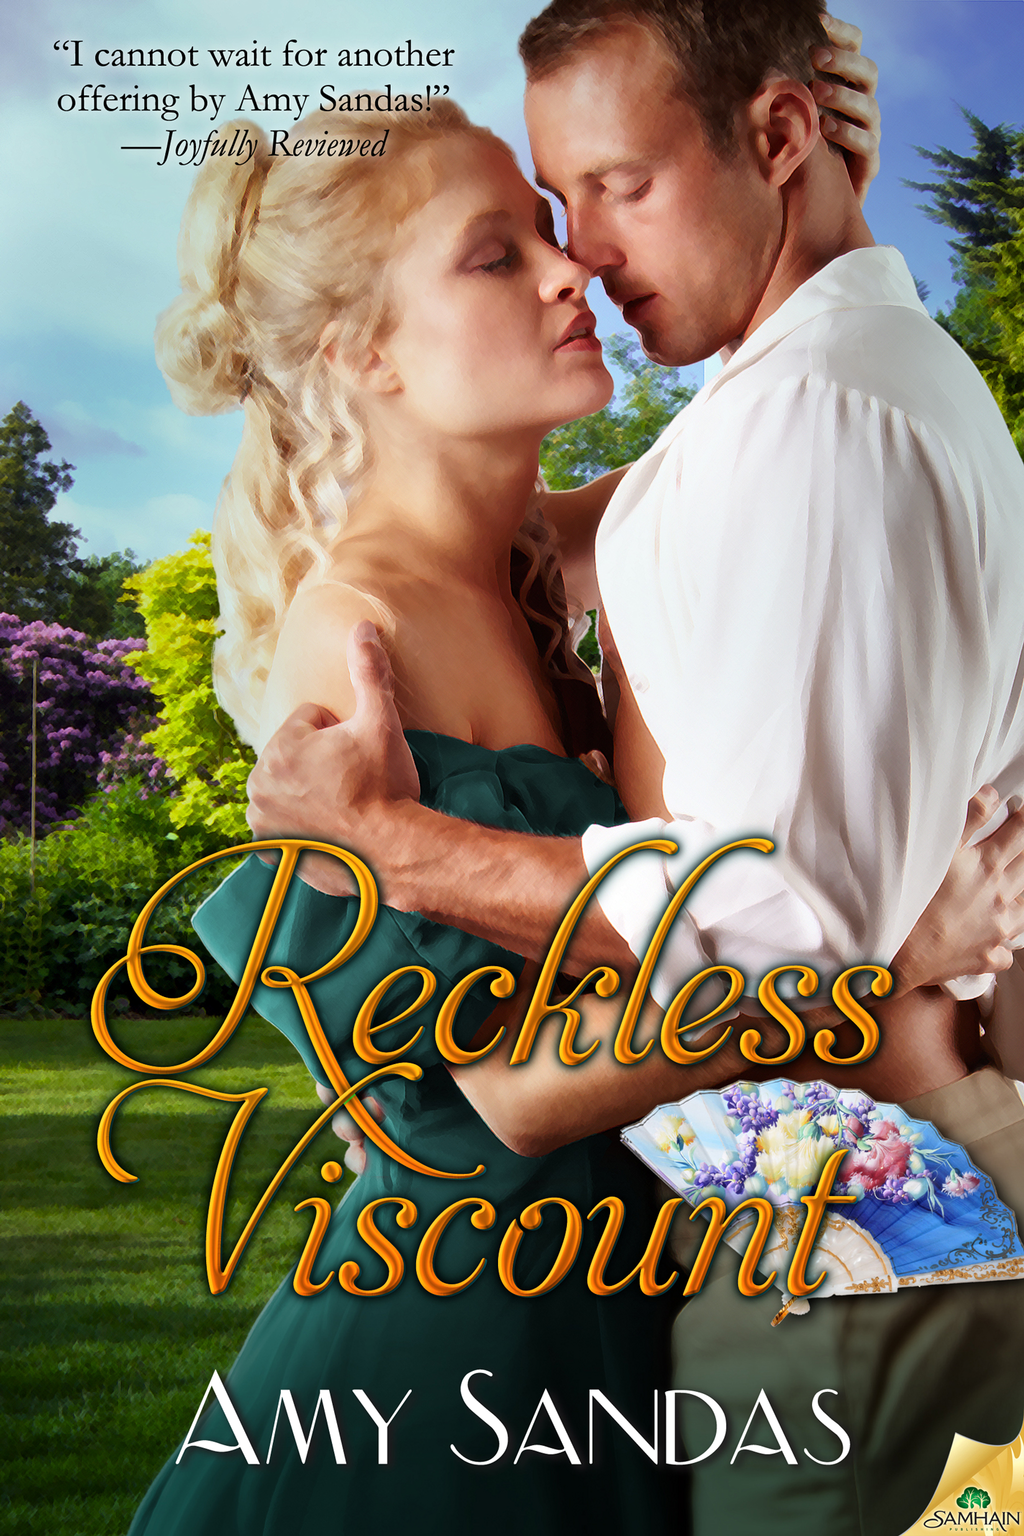 Reckless Viscount By: Amy Sandas